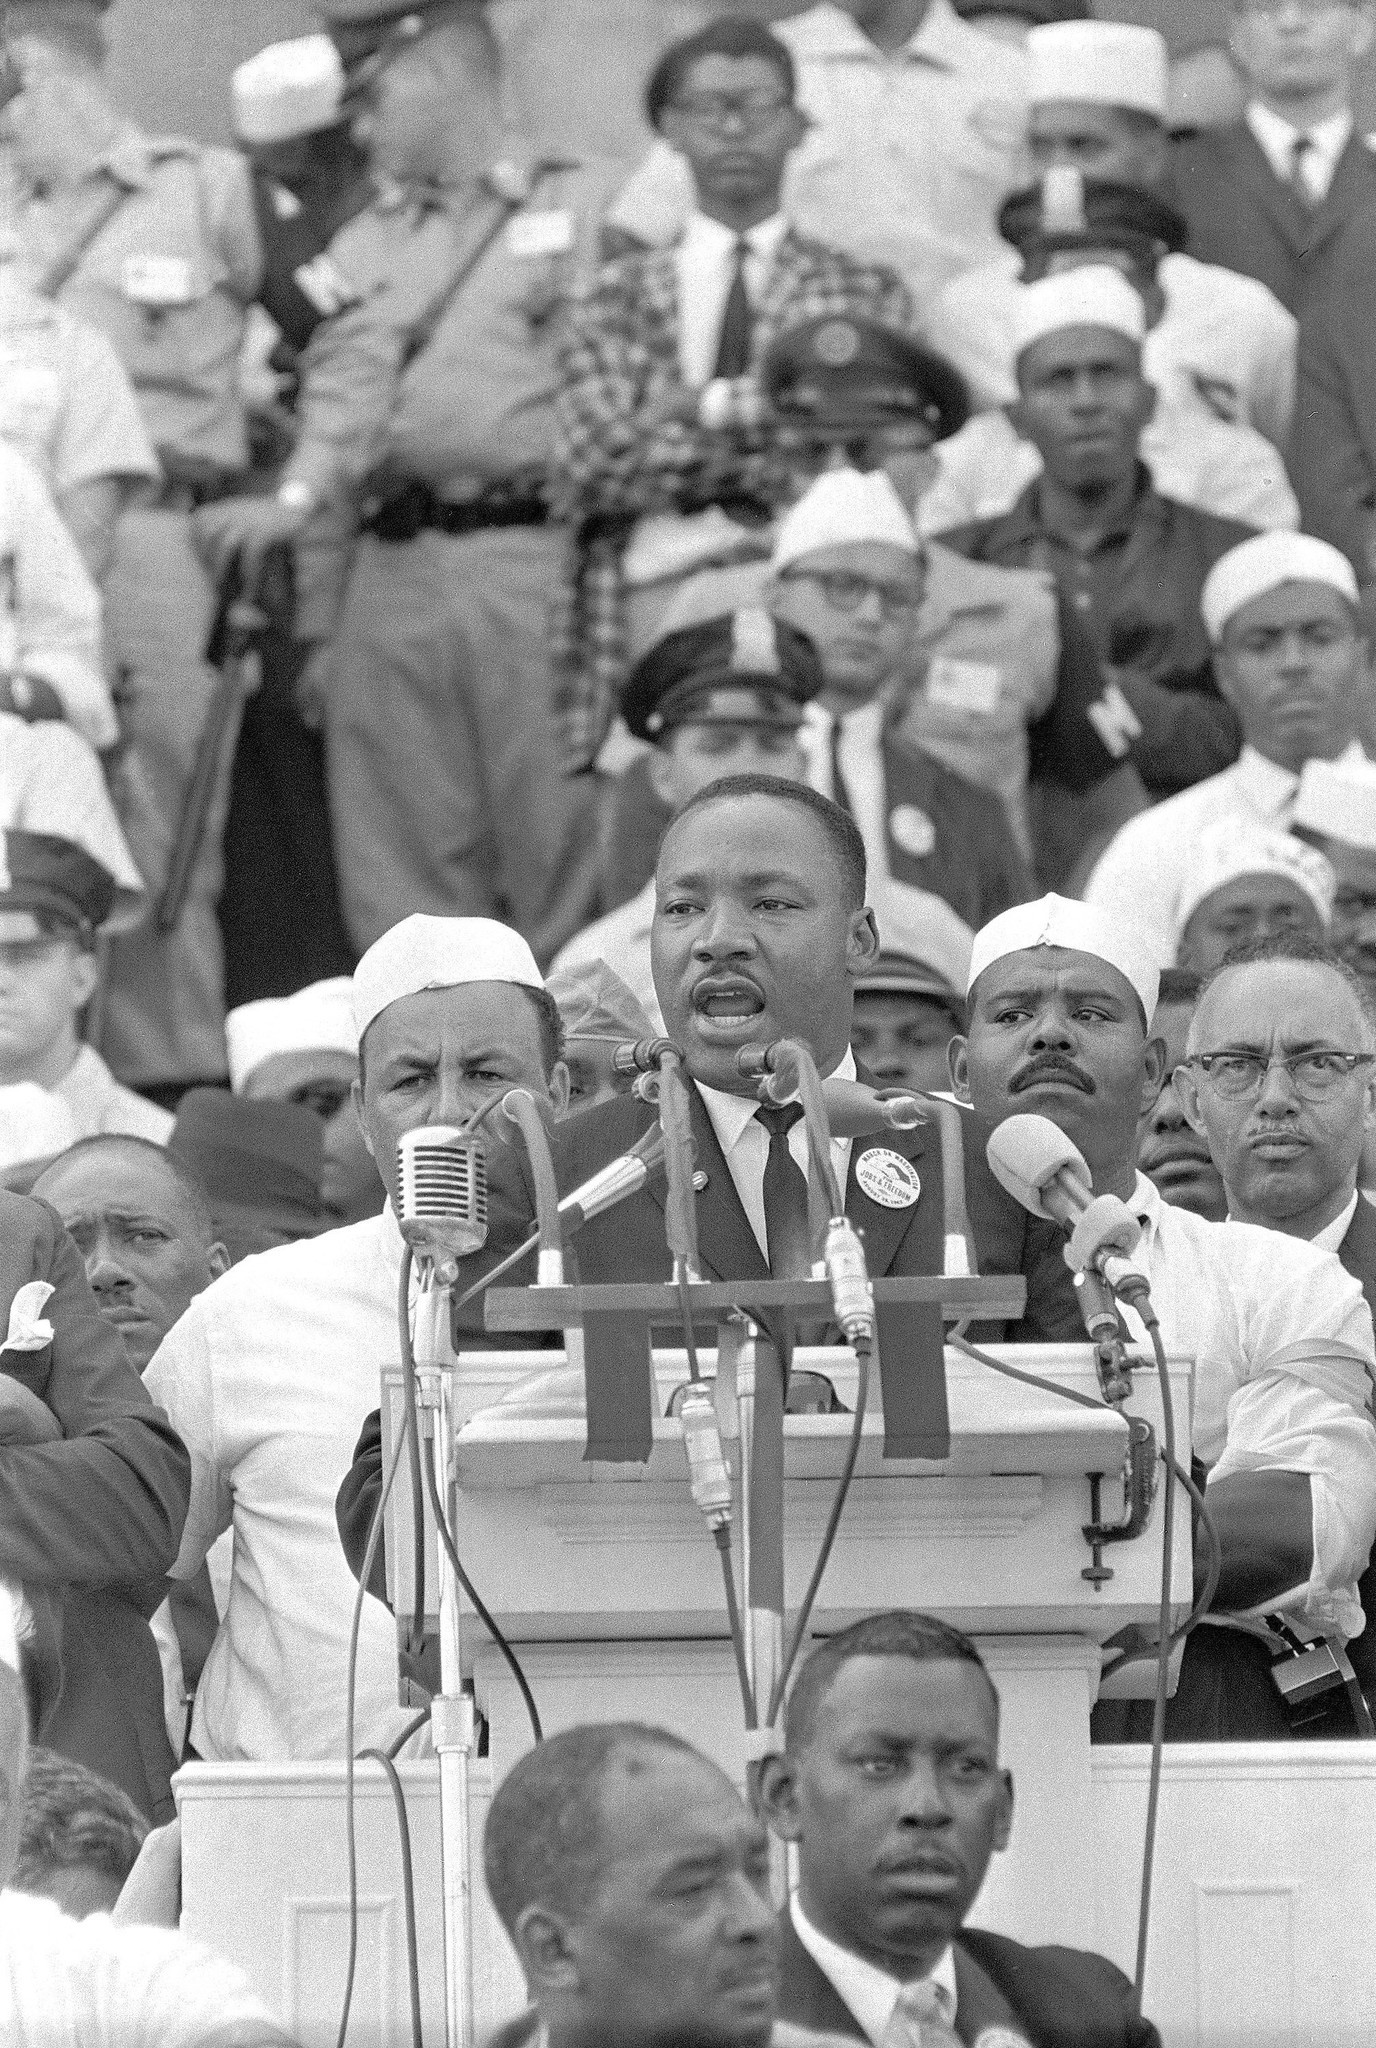 Aurora Youths To Bring Martin Luther Kings Legacy To Life  Aurora  Aurora Youths To Bring Martin Luther Kings Legacy To Life  Aurora  Beaconnews